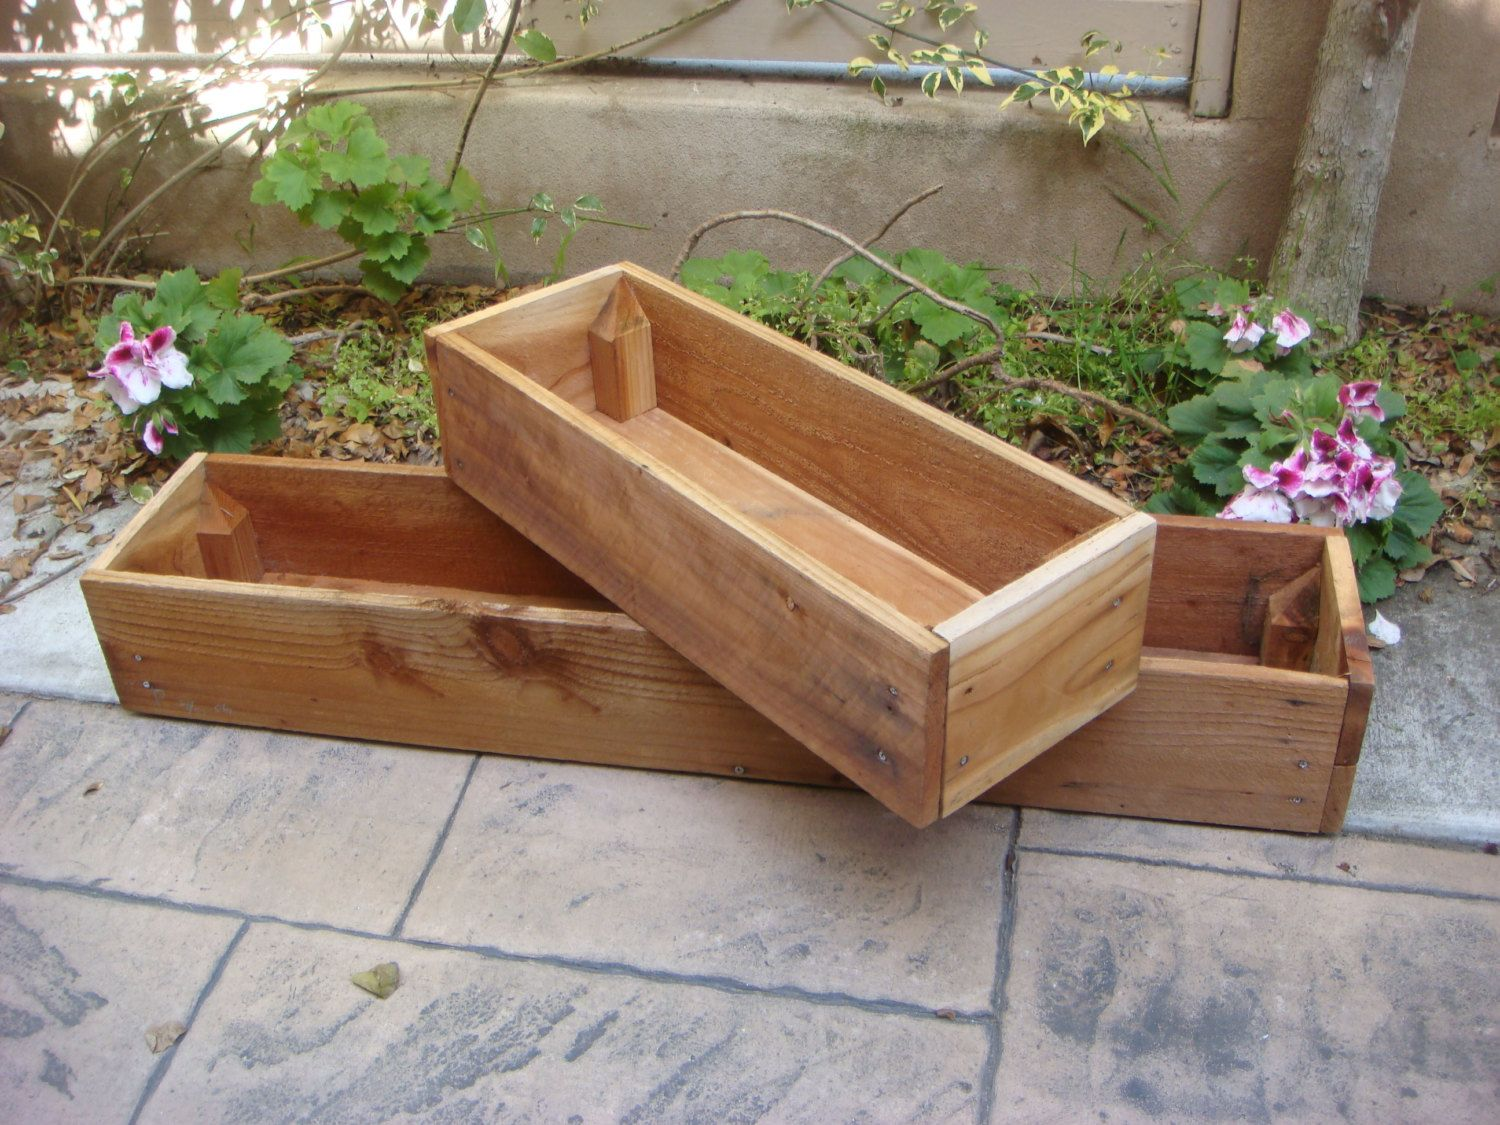 Choosing Wooden Planters | Home And Interior Design Ideas